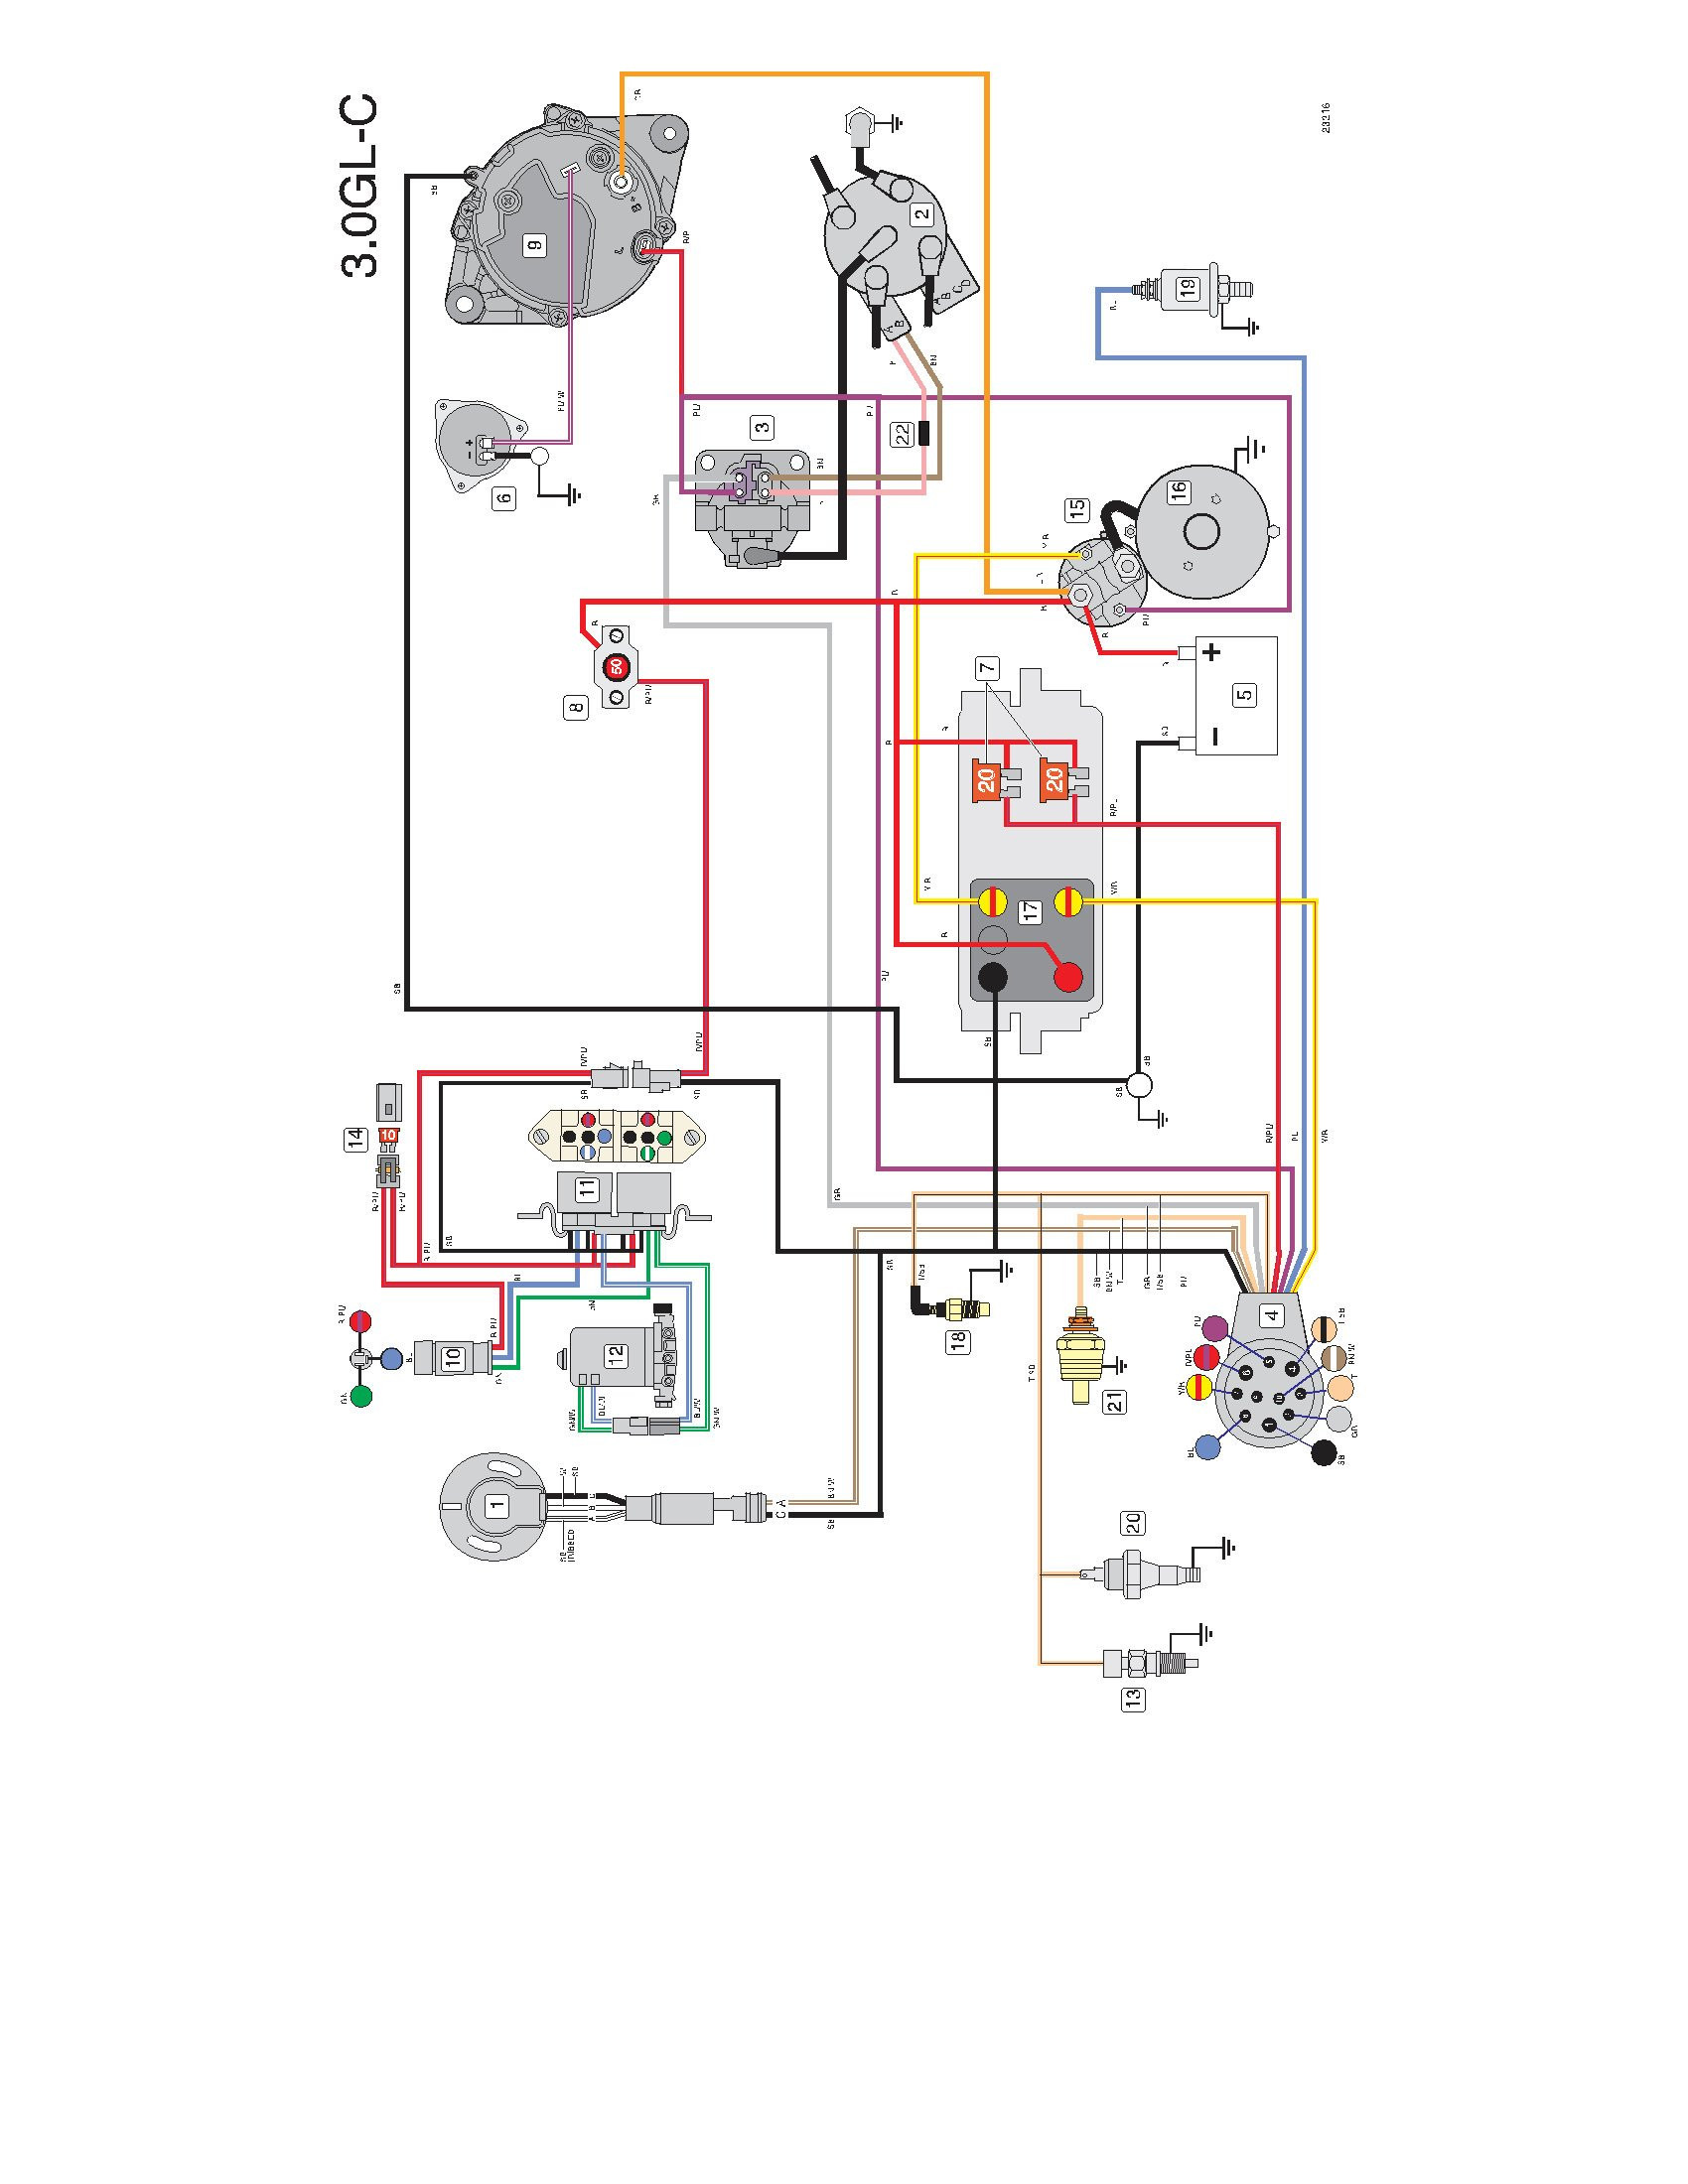 2011 08 12_175125_3.0gsc volvo penta 5 7 gs wiring diagram omc wiring diagrams \u2022 wiring volvo penta 5.7 gxi wiring diagram at bakdesigns.co